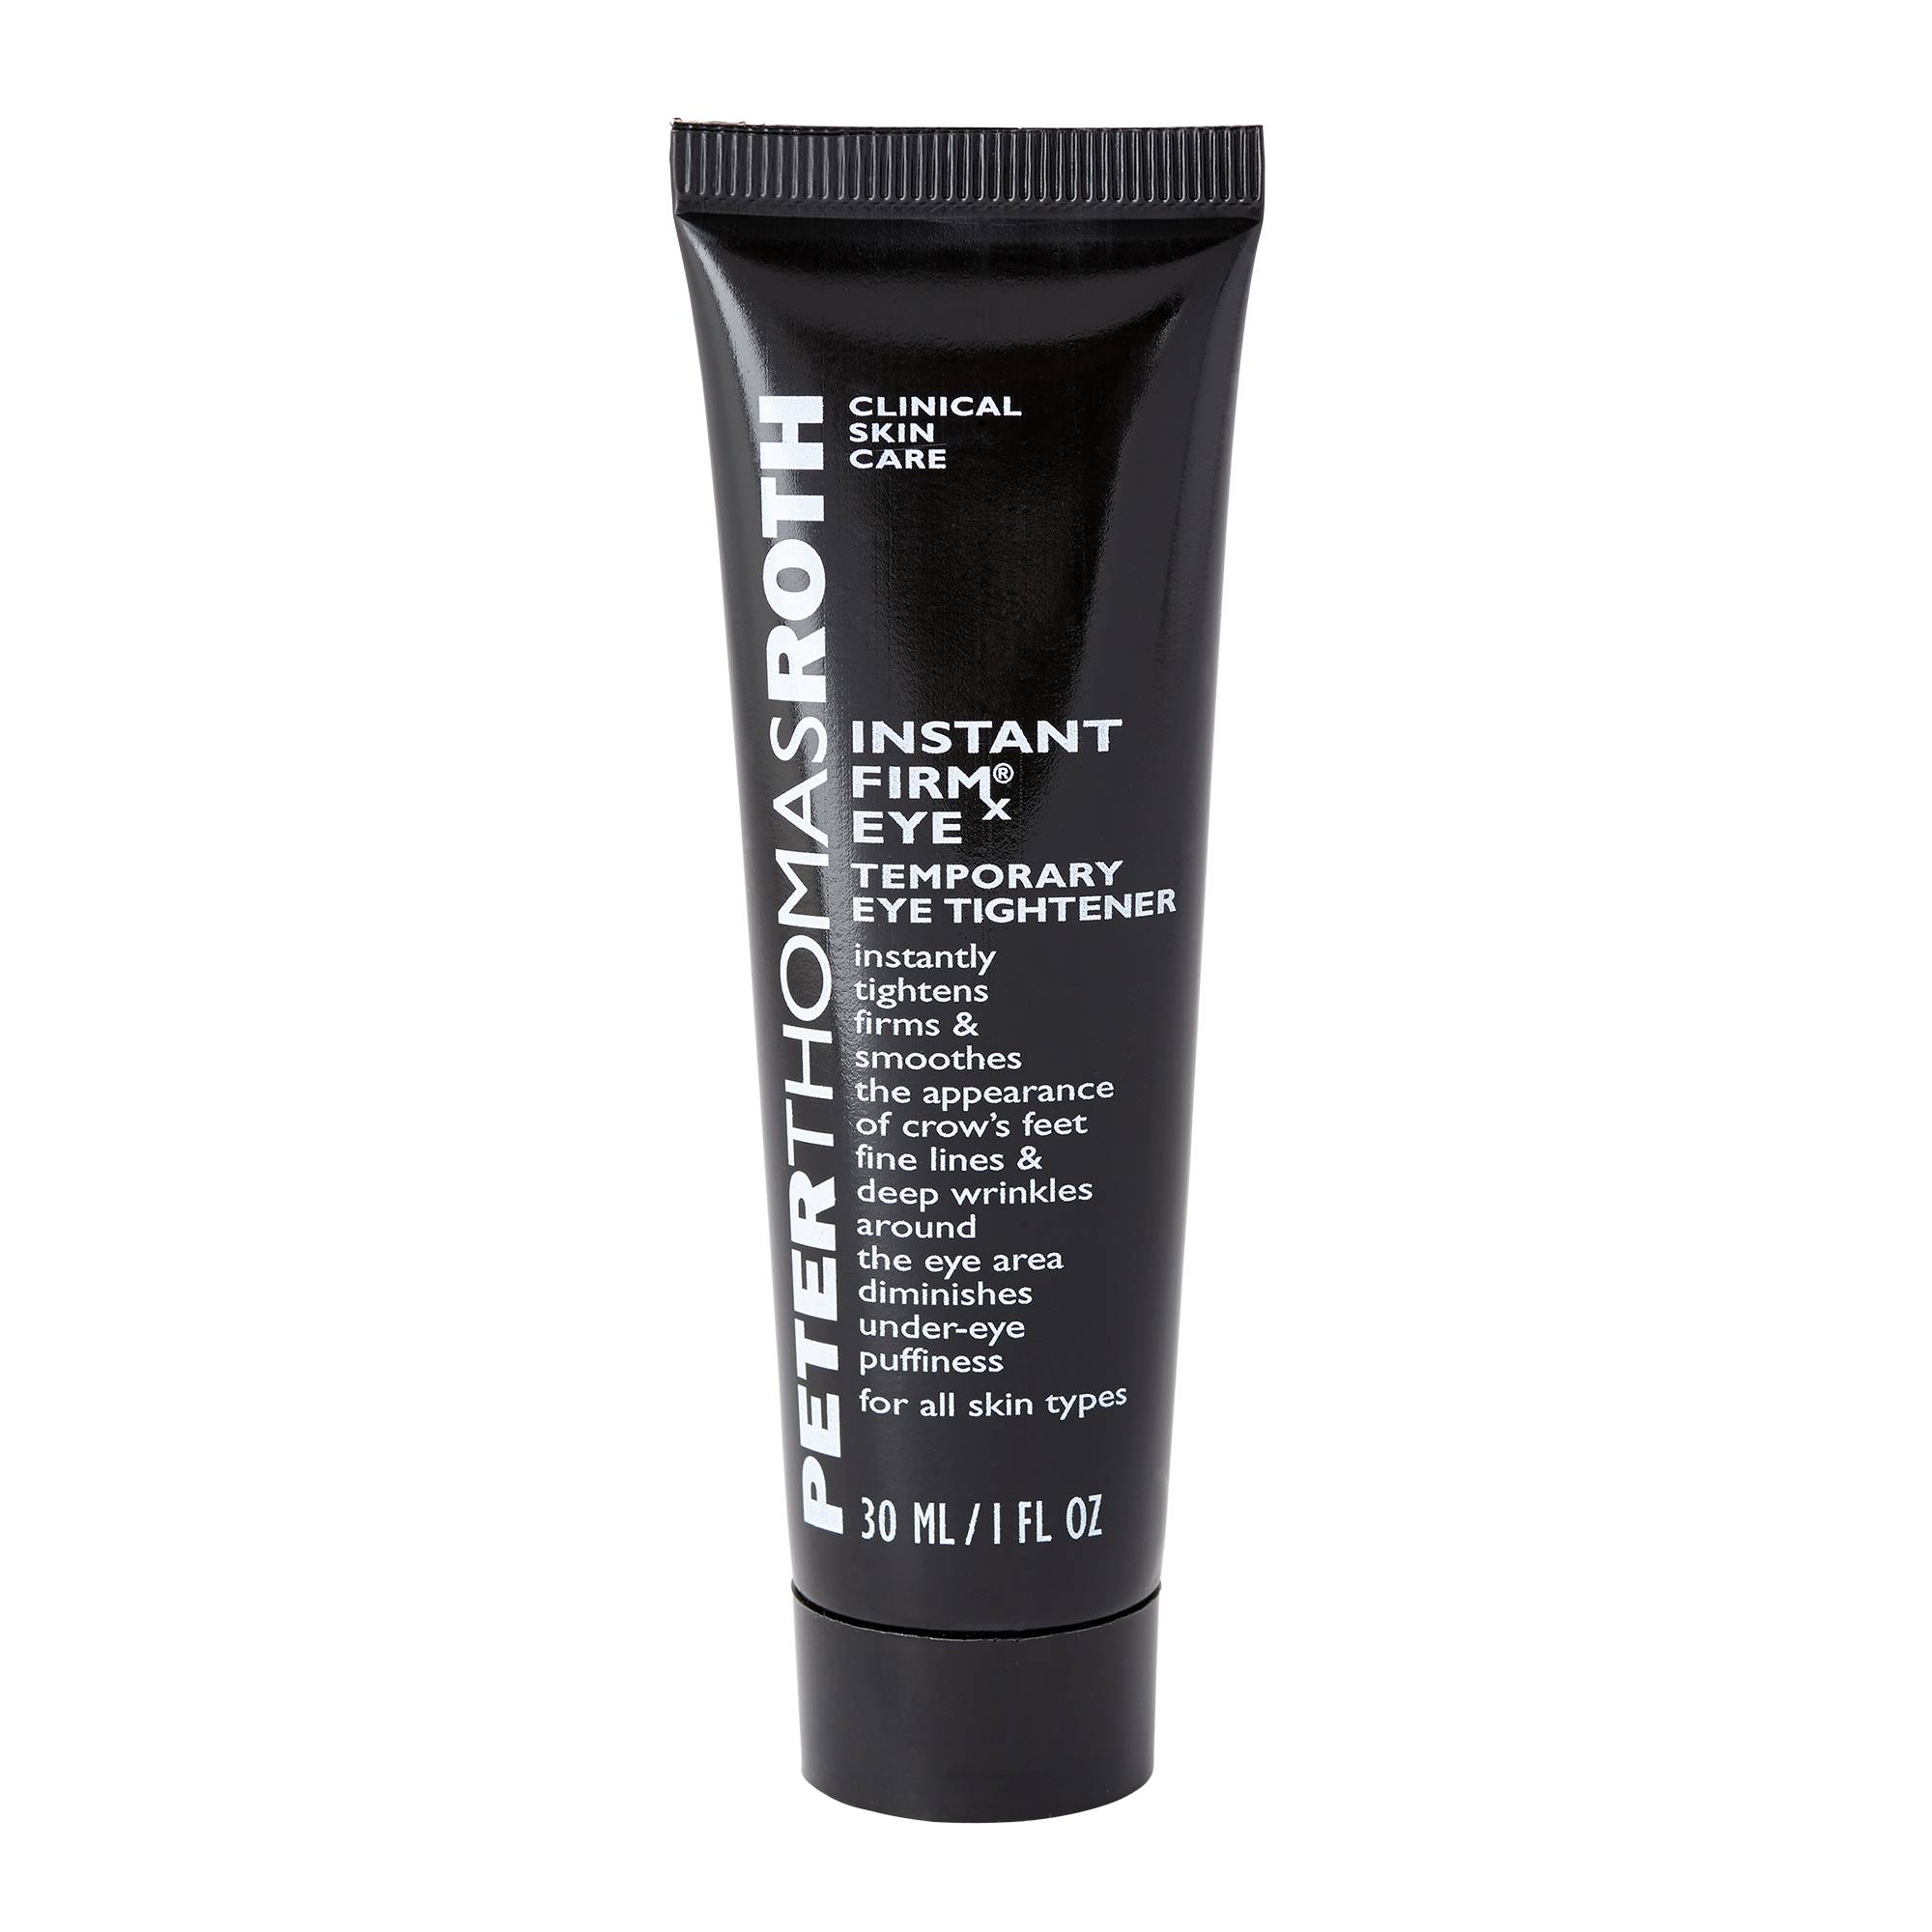 Peter Thomas Roth Instant Firm X Eye 30ml